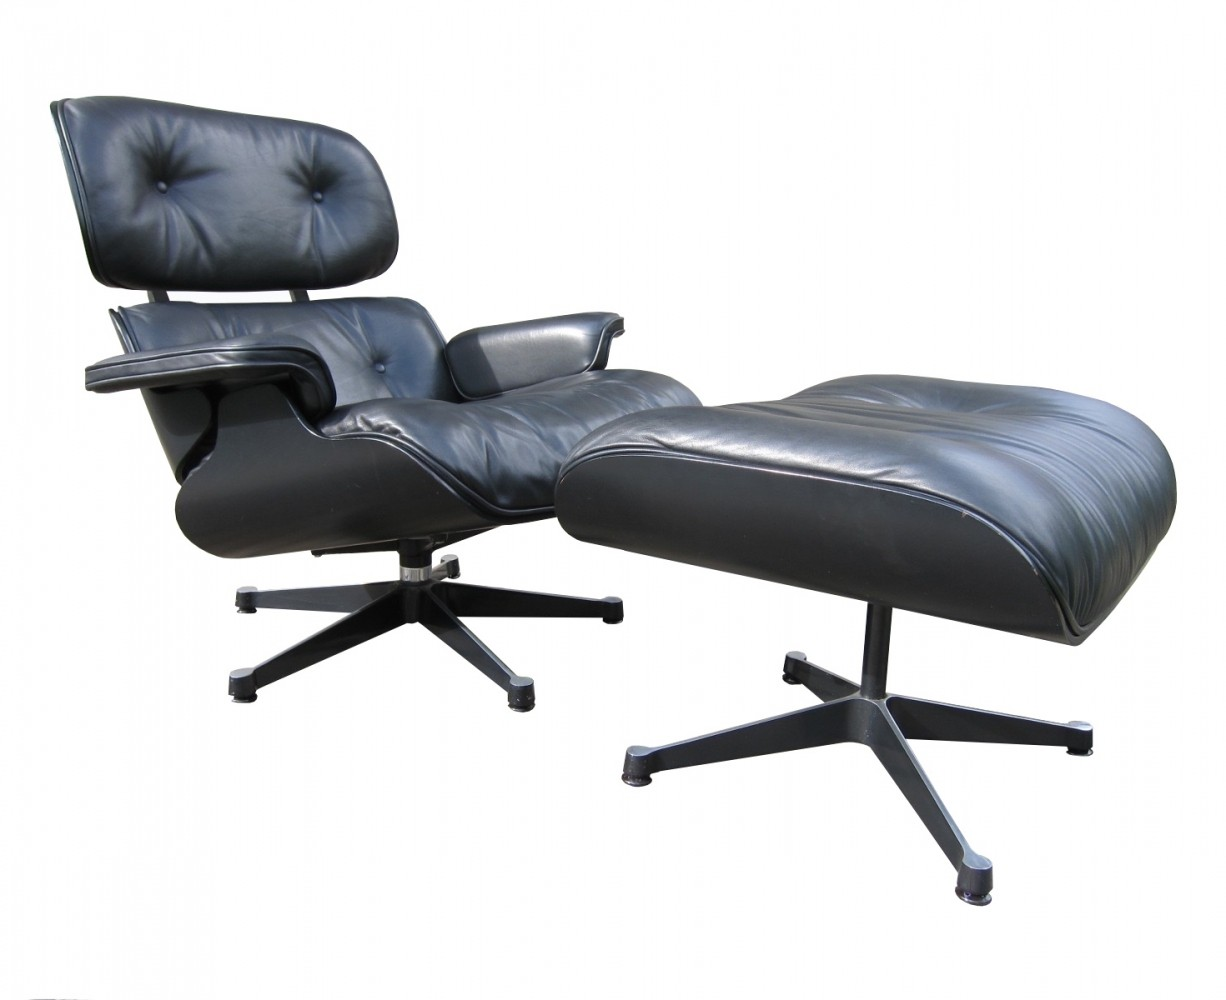 Eames lounge chair vitra vs herman miller vitra eames for Eames lounge sessel nachbau